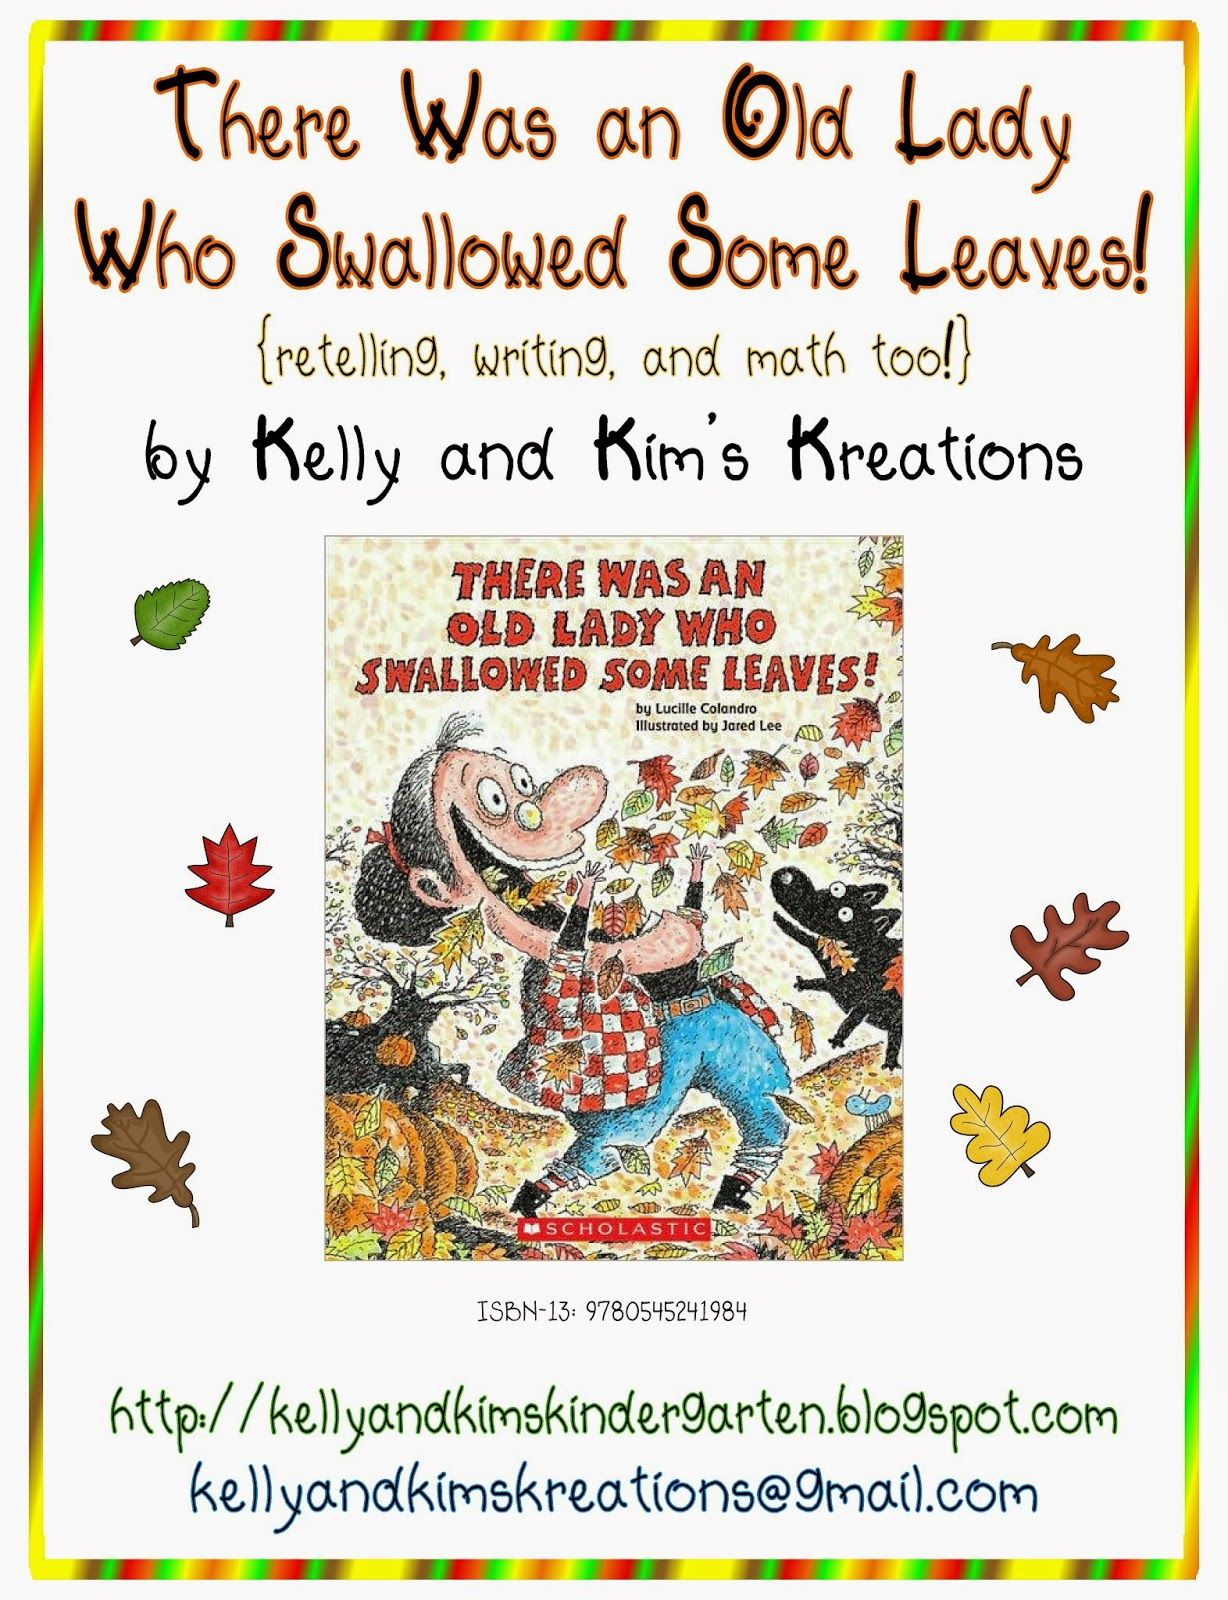 Kelly And Kim's Kindergarten Kreations: There Was An Old